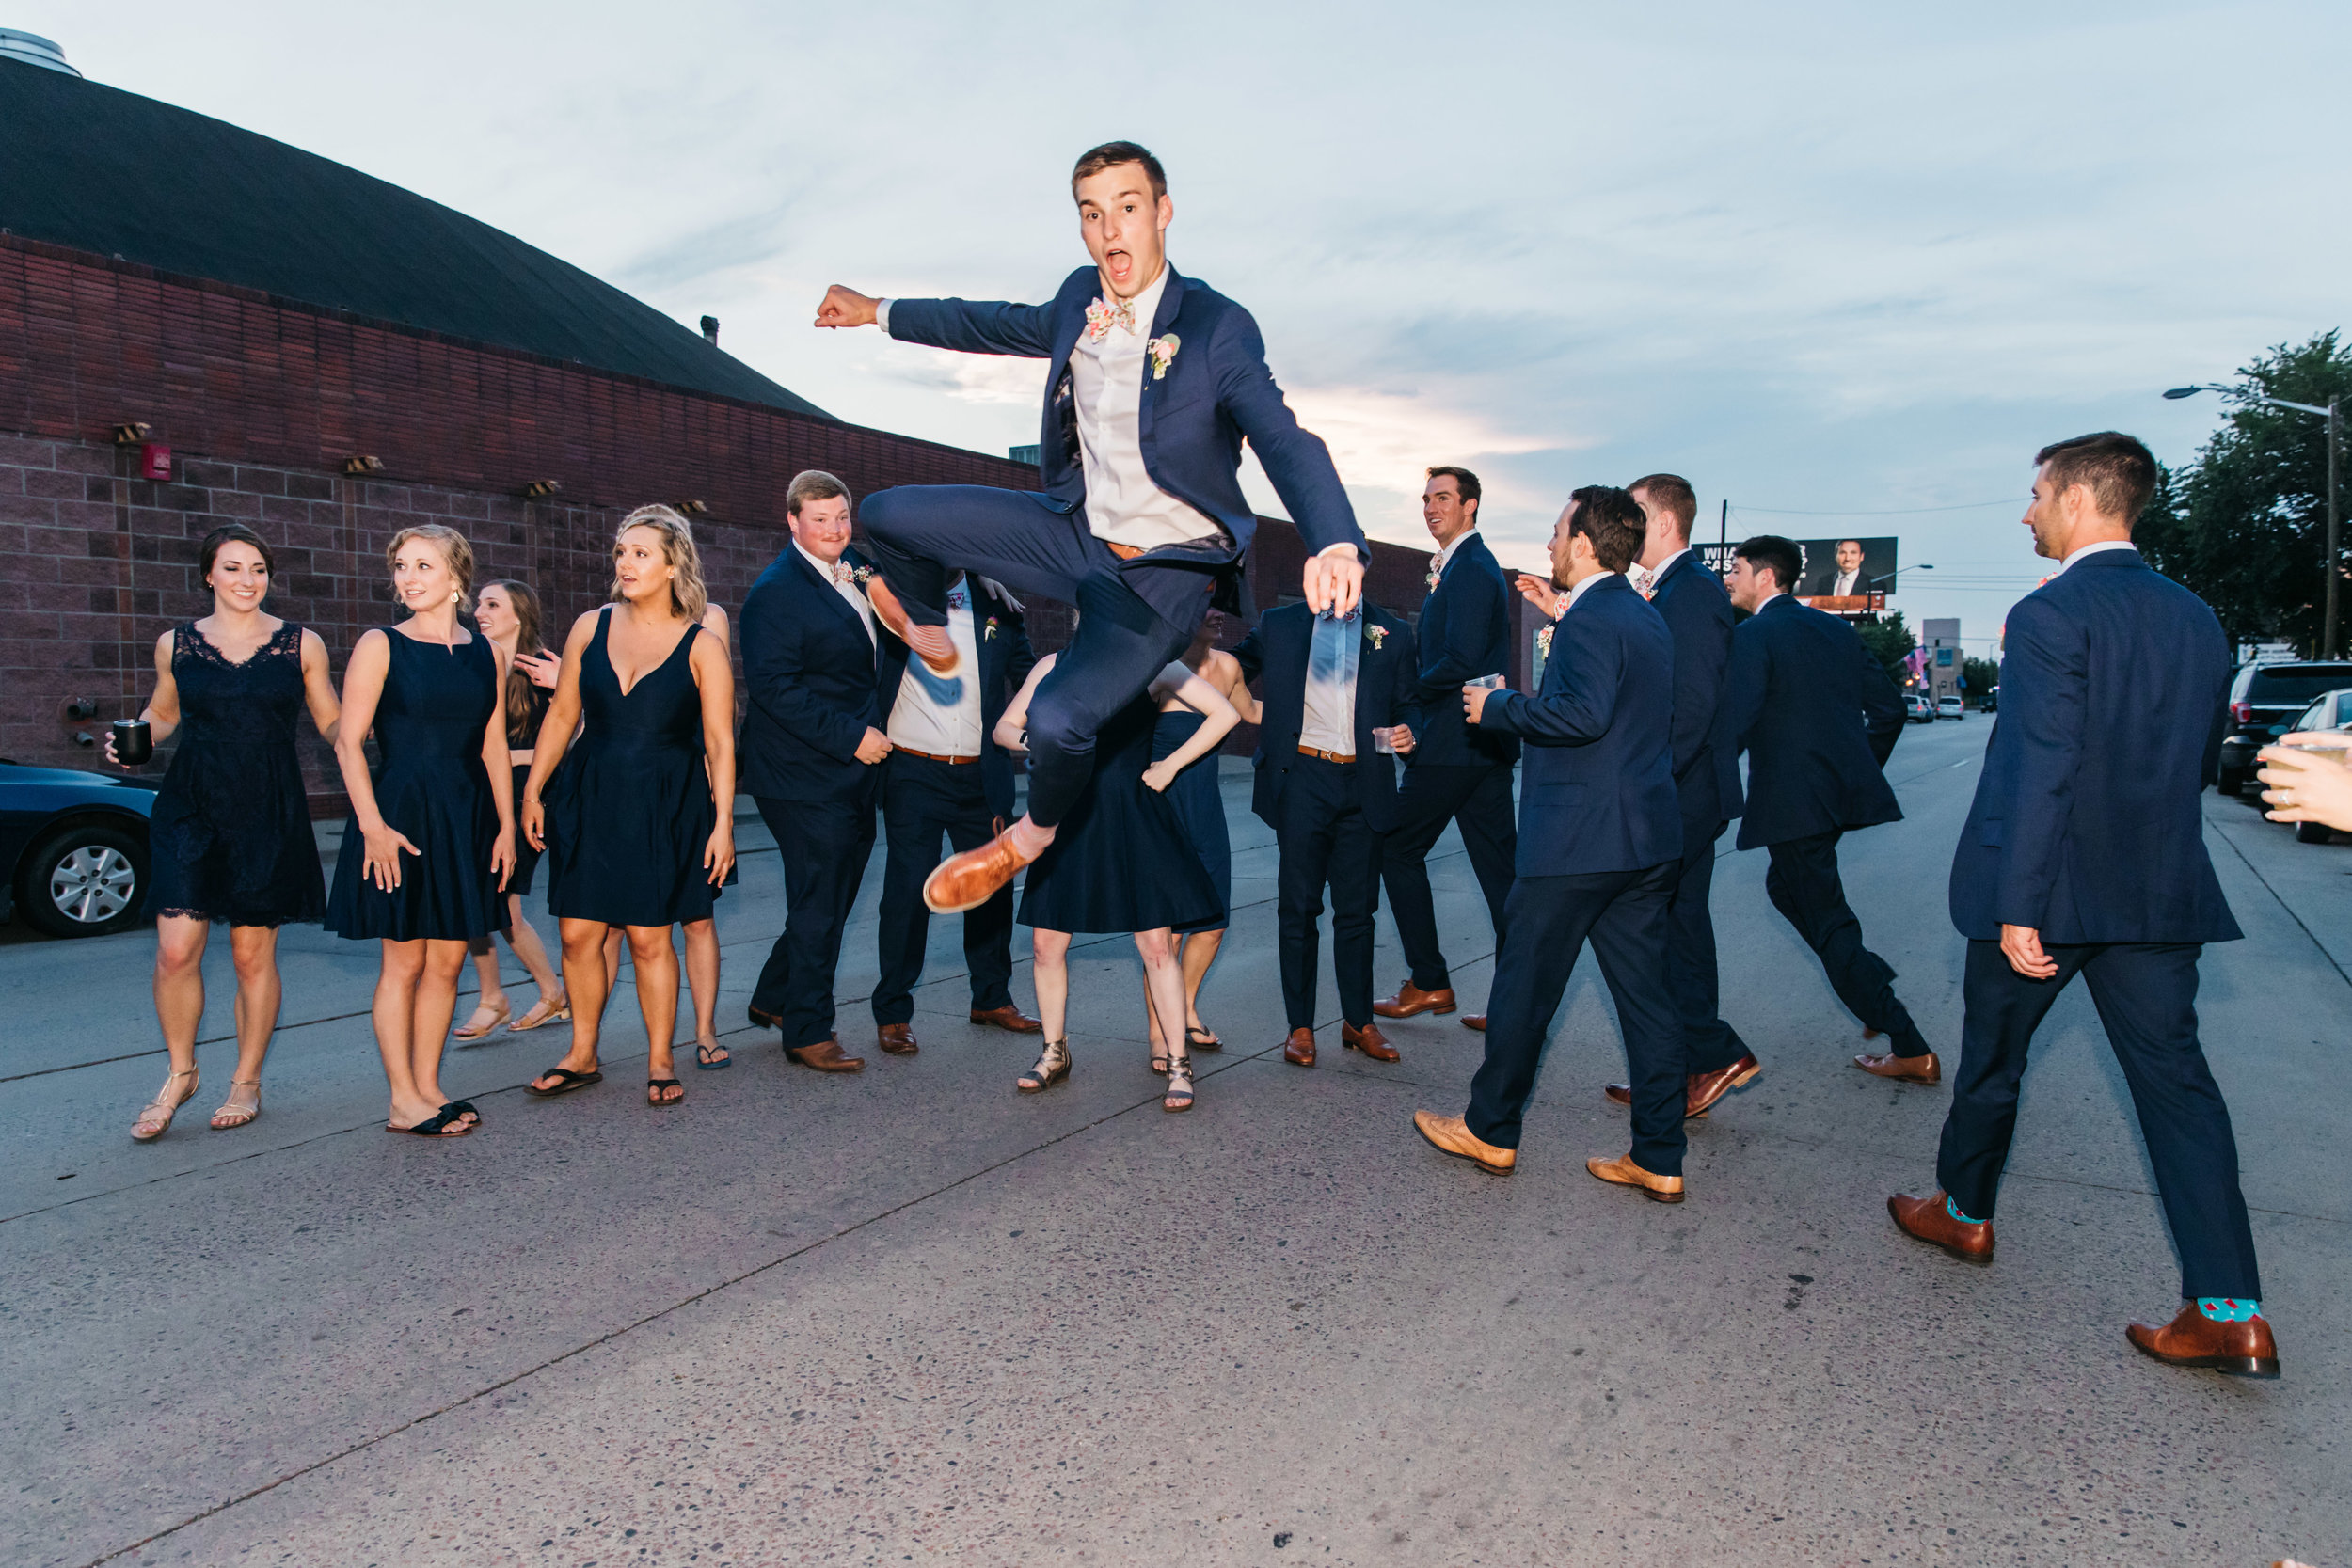 jumping wedding party denver